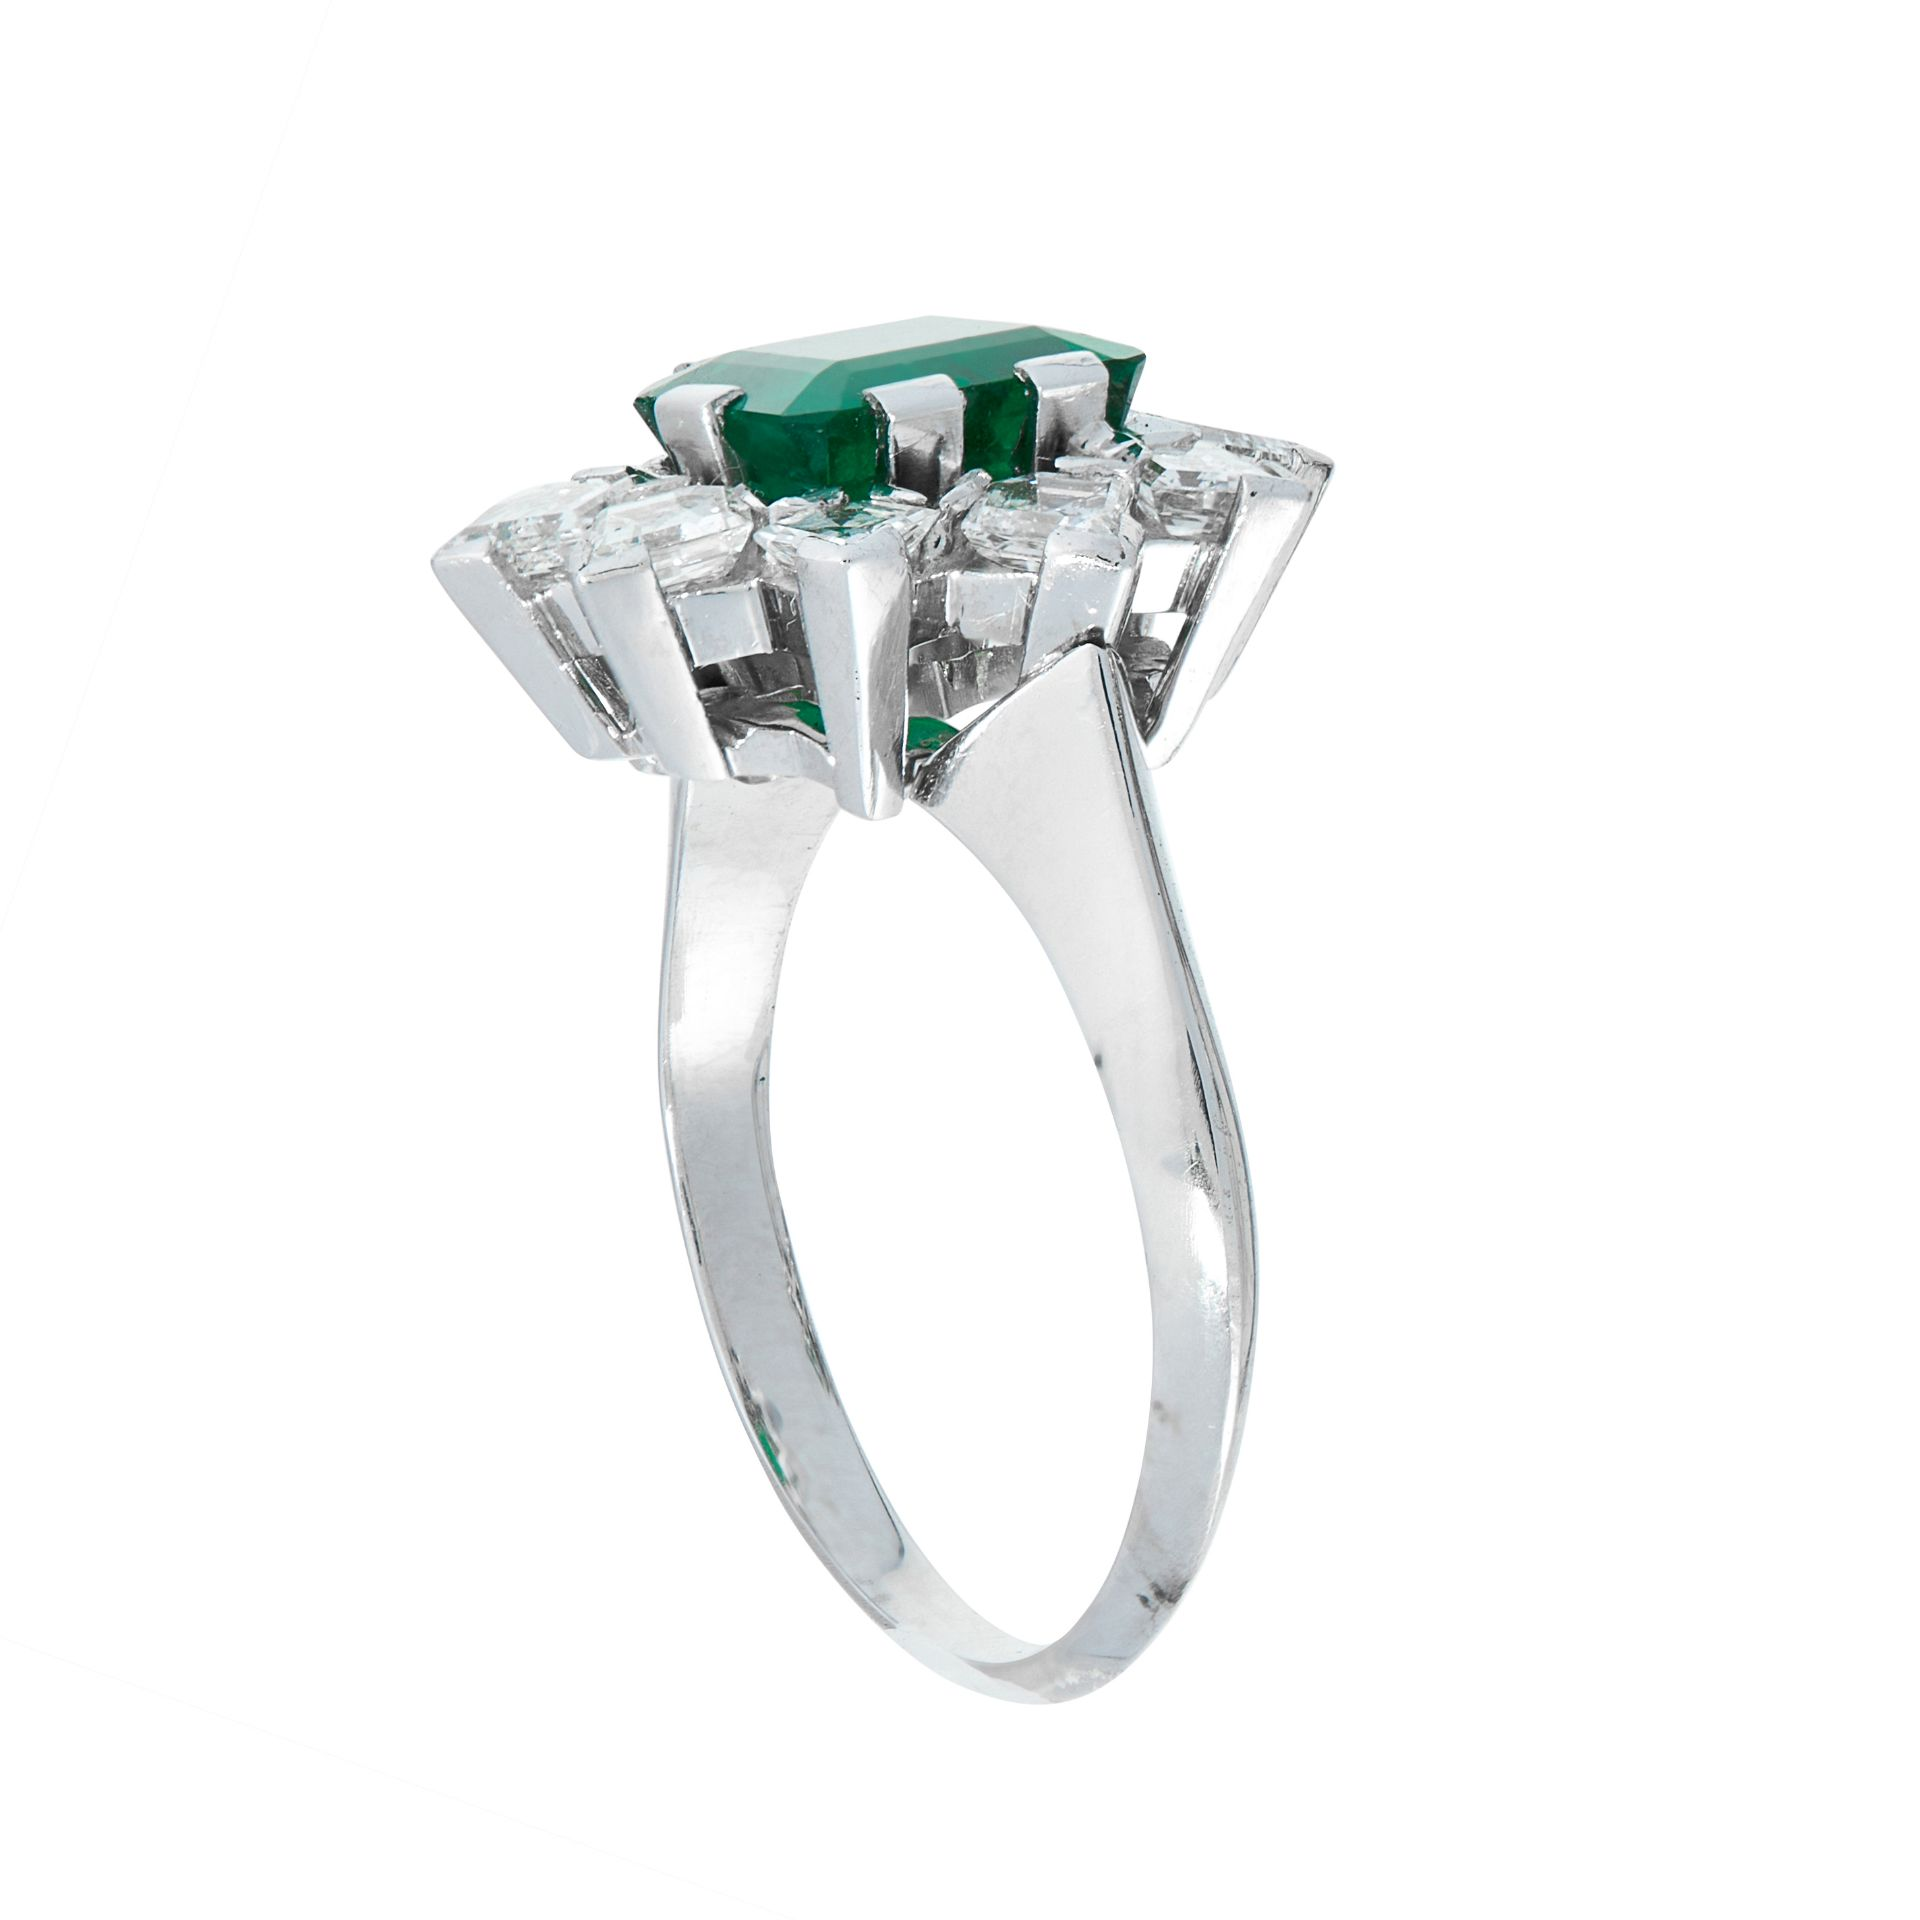 AN EMERALD AND DIAMOND DRESS RING in 18ct white gold, set with an emerald cut emerald of 1.64 - Image 2 of 2